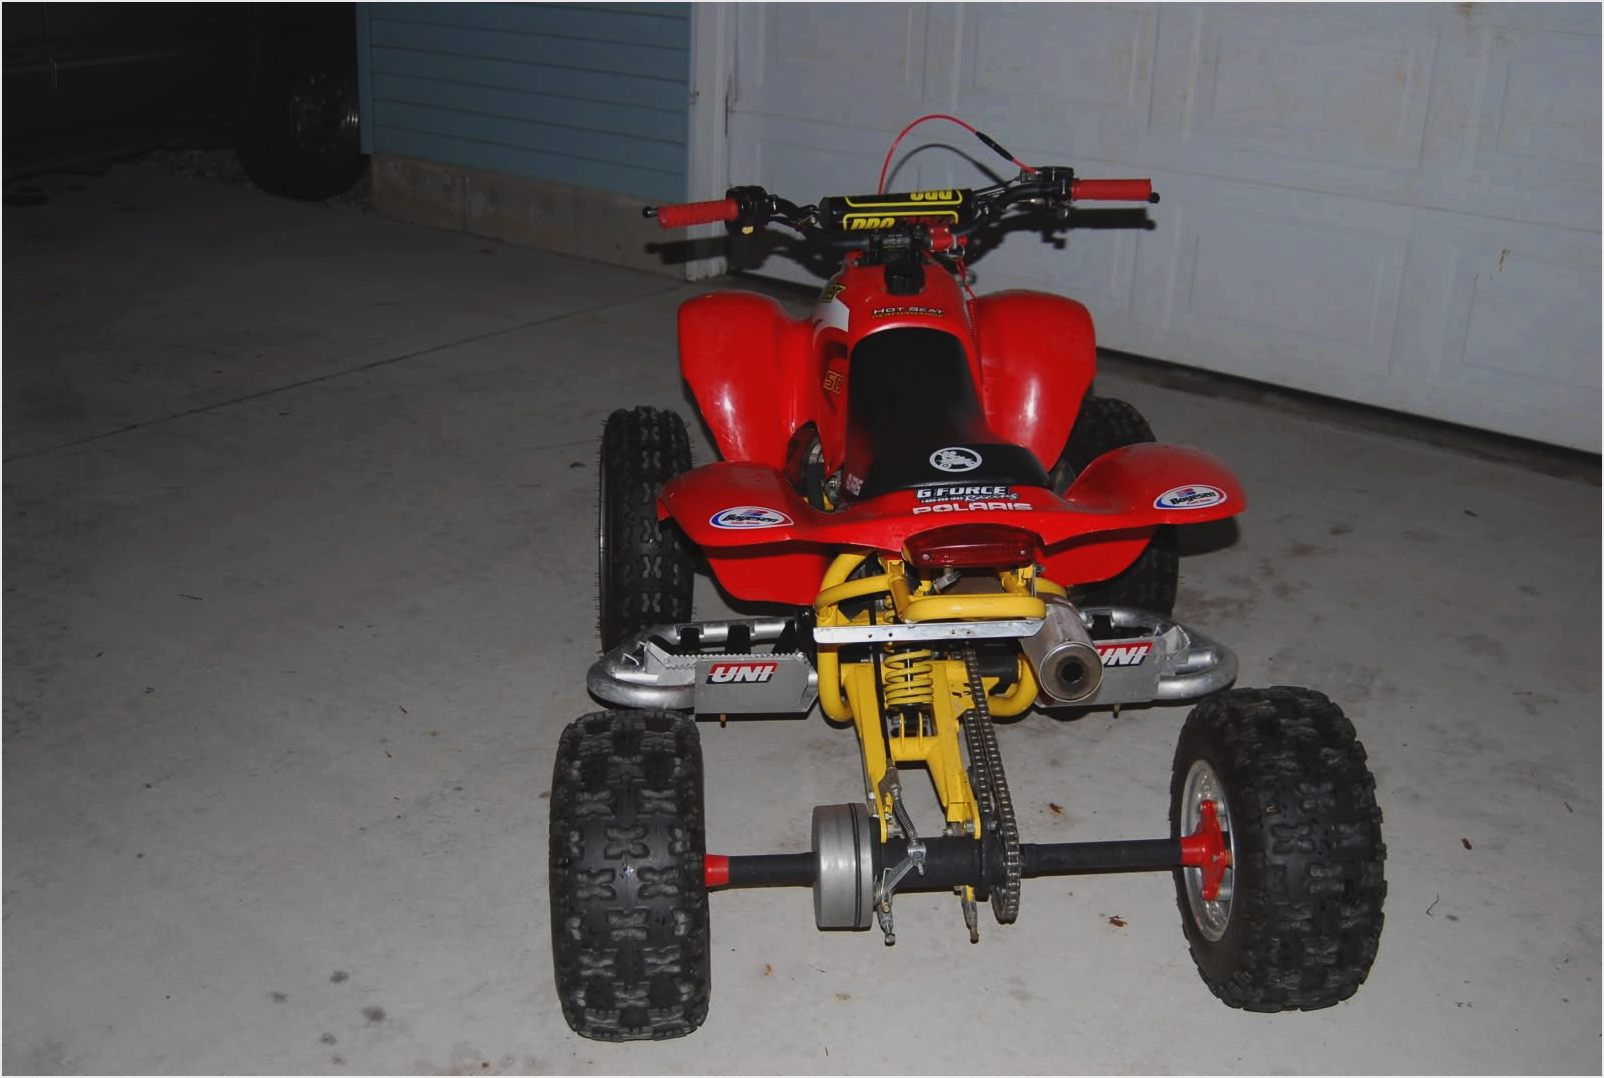 2003 Polaris Scrambler 50 Wiring Diagram Trusted Sportsman 500 2000 400 Service Manual Nemetas Aufgegabelt Info Ranger 700